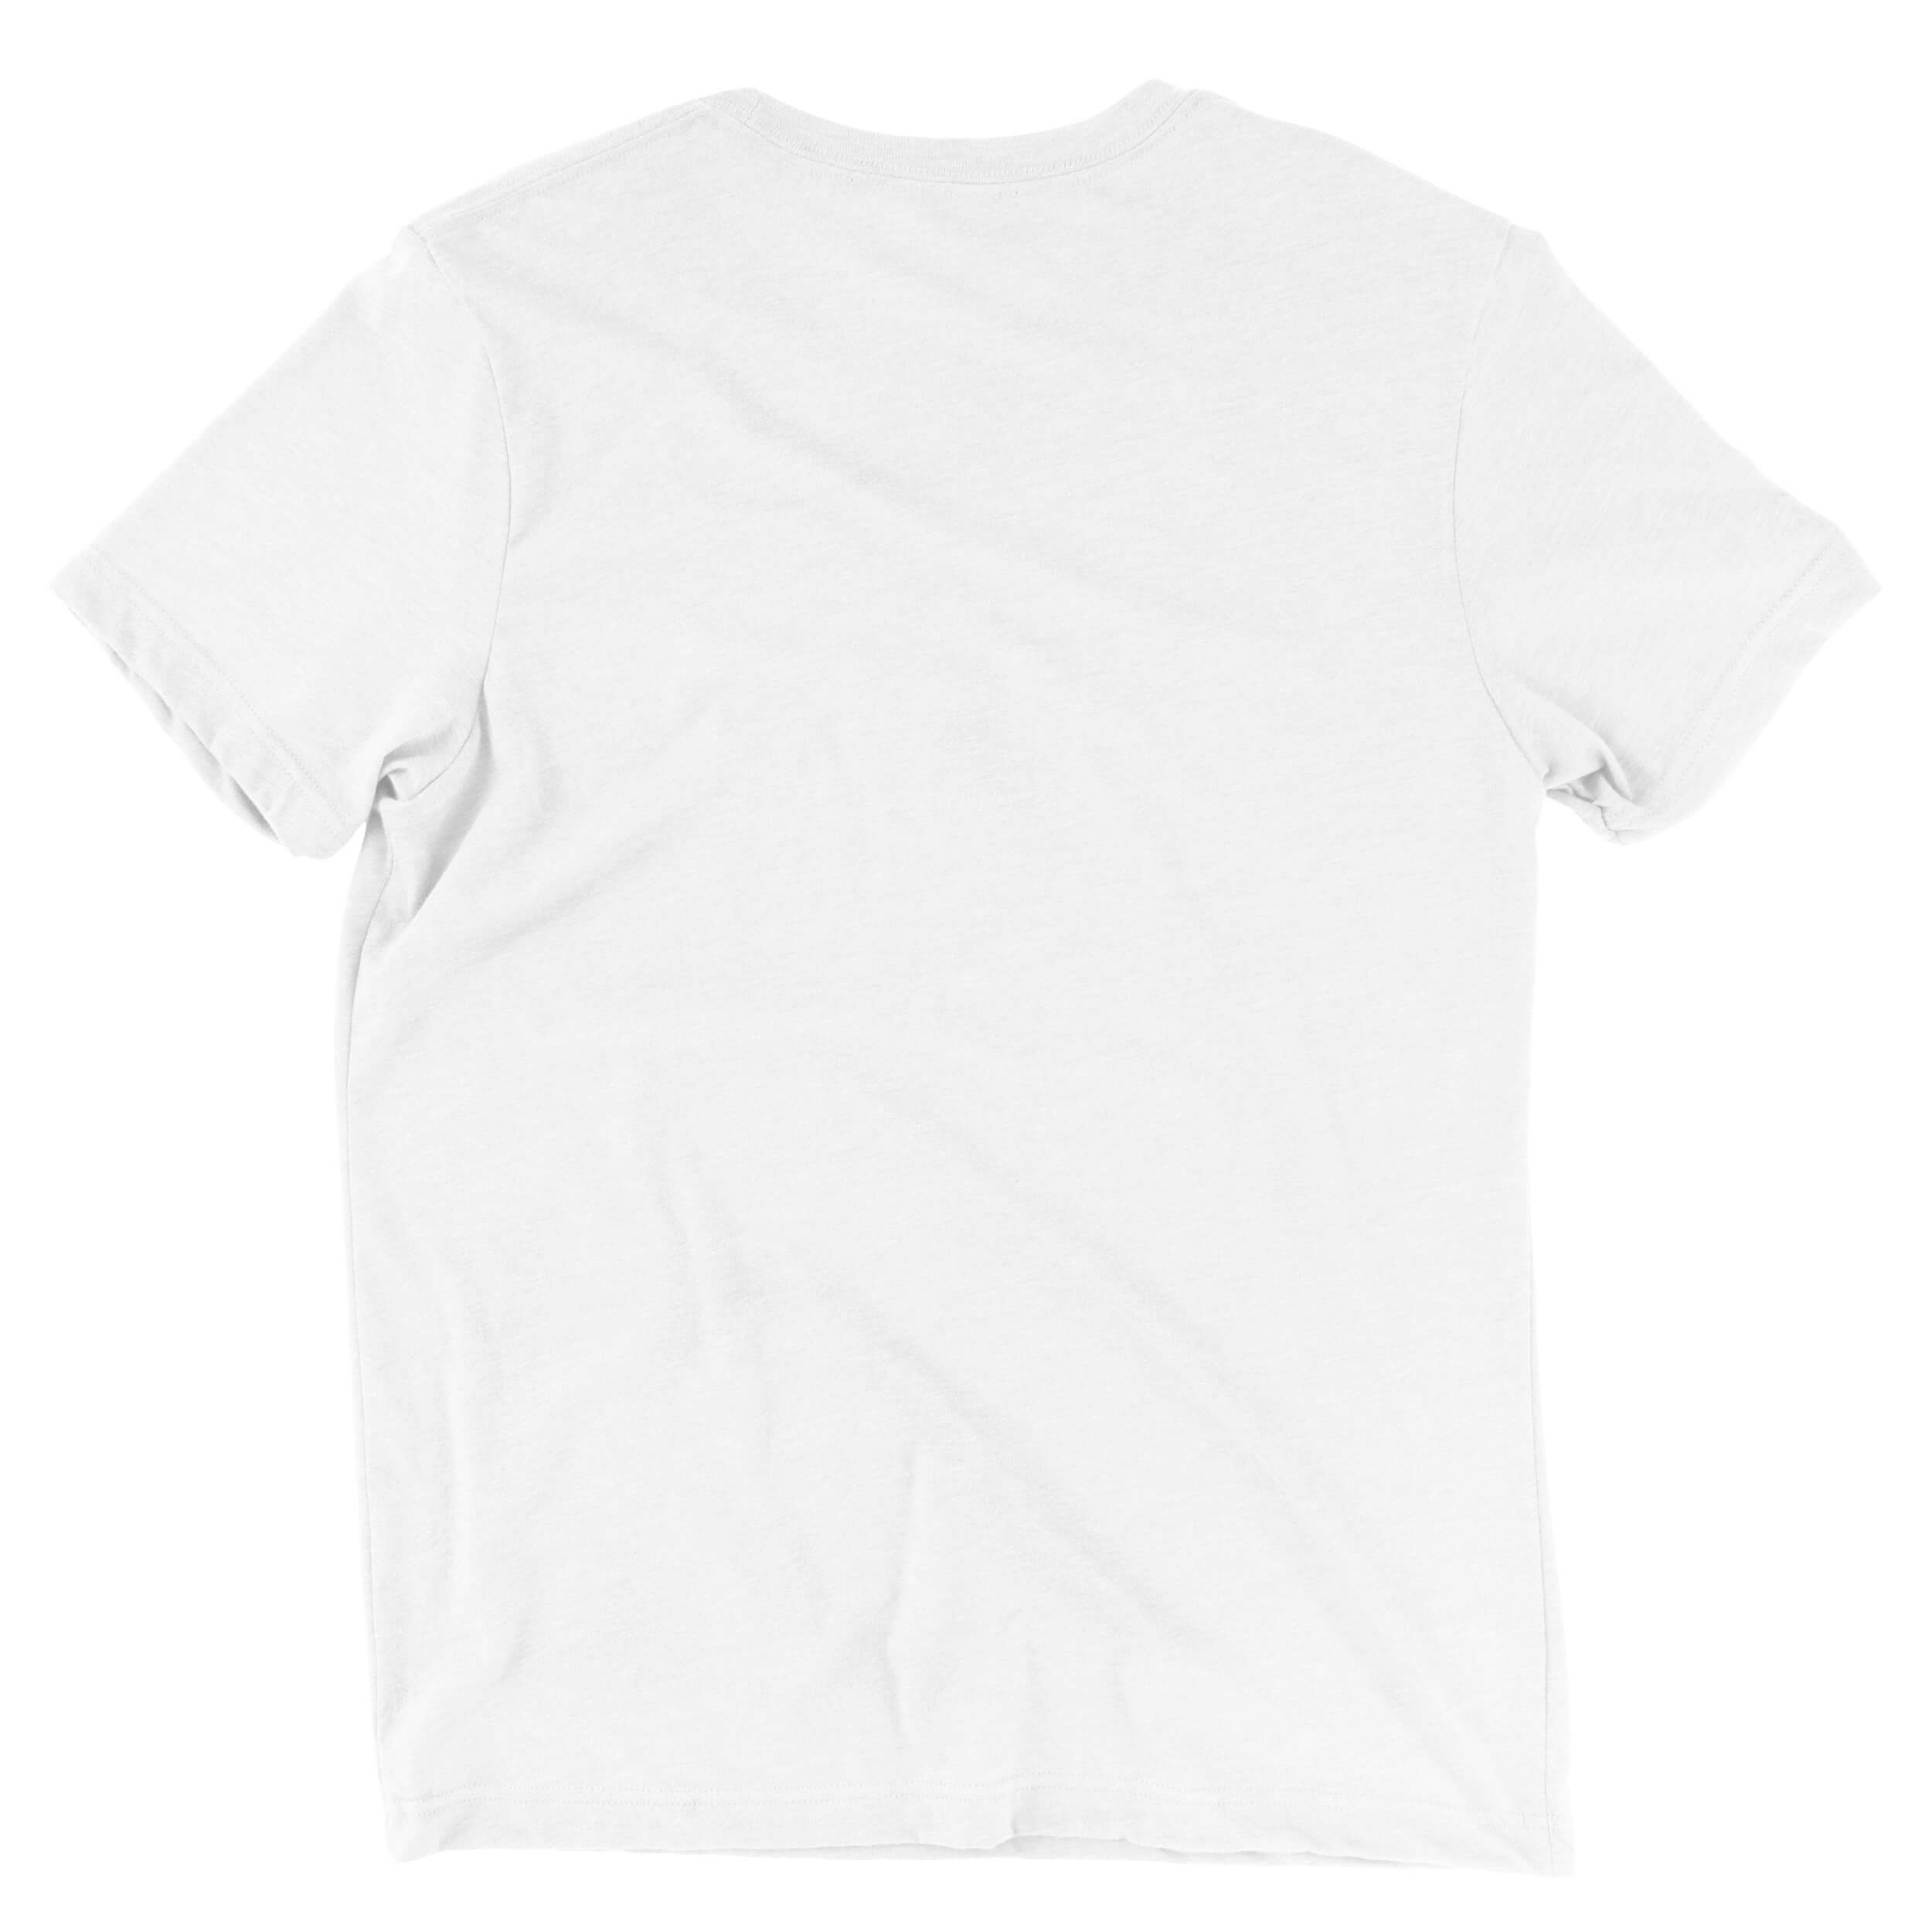 Epstein Didnt Kill Himself T Shirt Conspiracy Message Tee